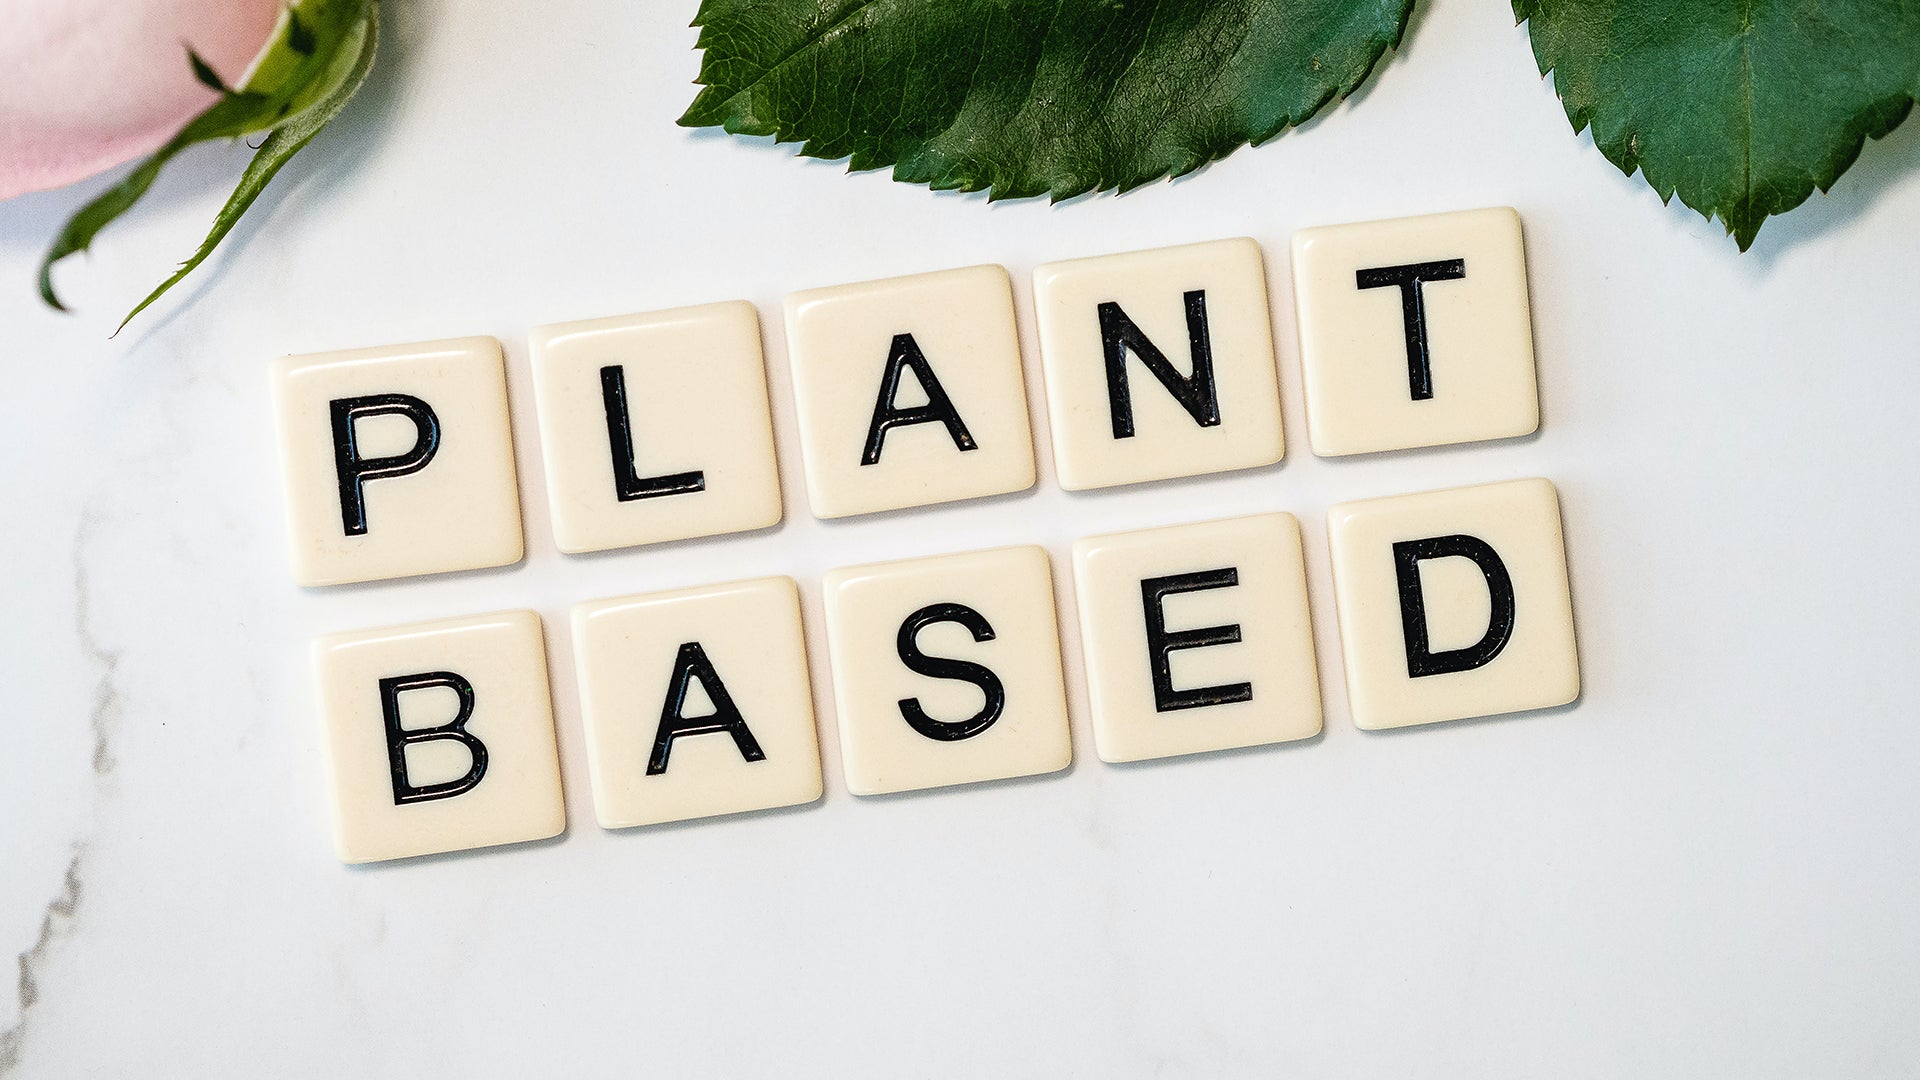 Plant Based in tekst